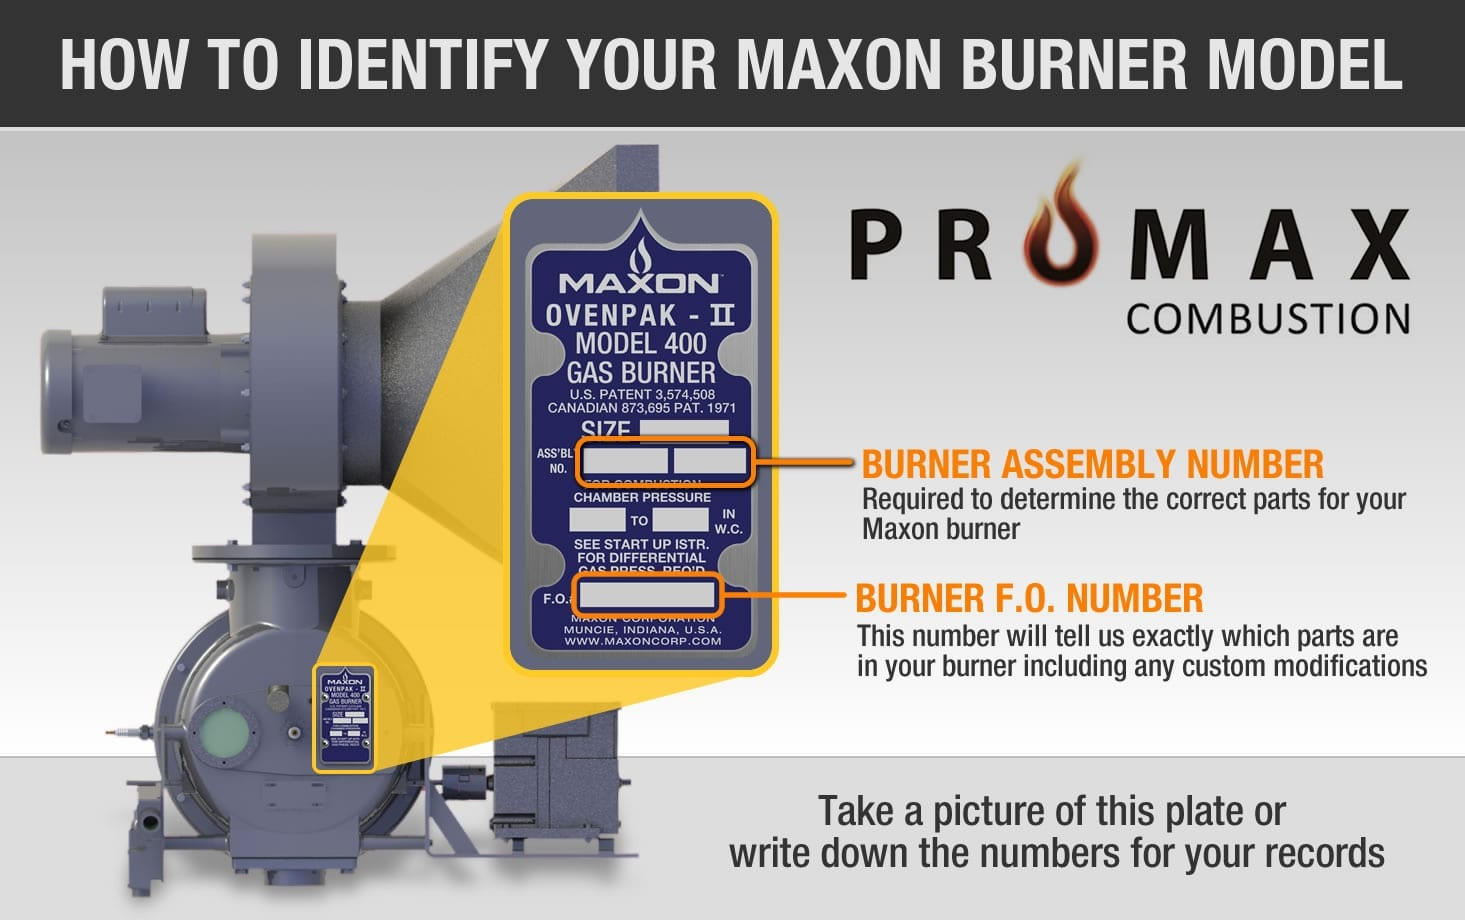 maxon ovenpak i parts identifier promax combustionpromax please choose the model of your maxon burner